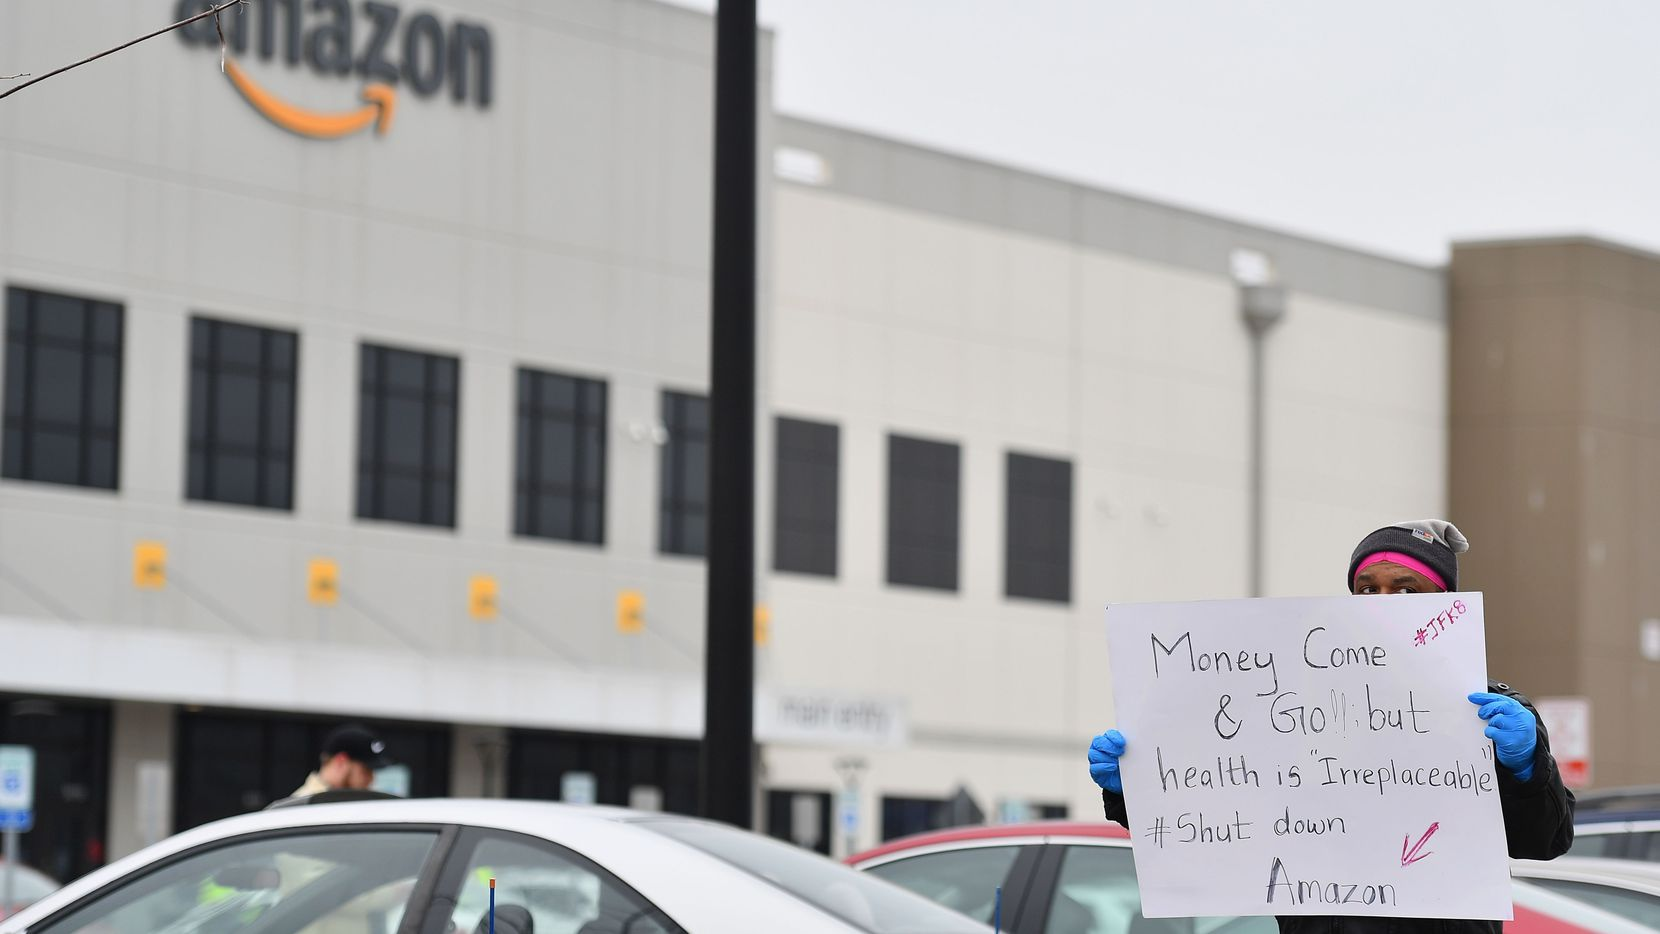 Amazon workers at Amazon's Staten Island warehouse strike in demand that the facility be shut down and cleaned after one staffer tested positive for the coronavirus on March 30, 2020 in New York.